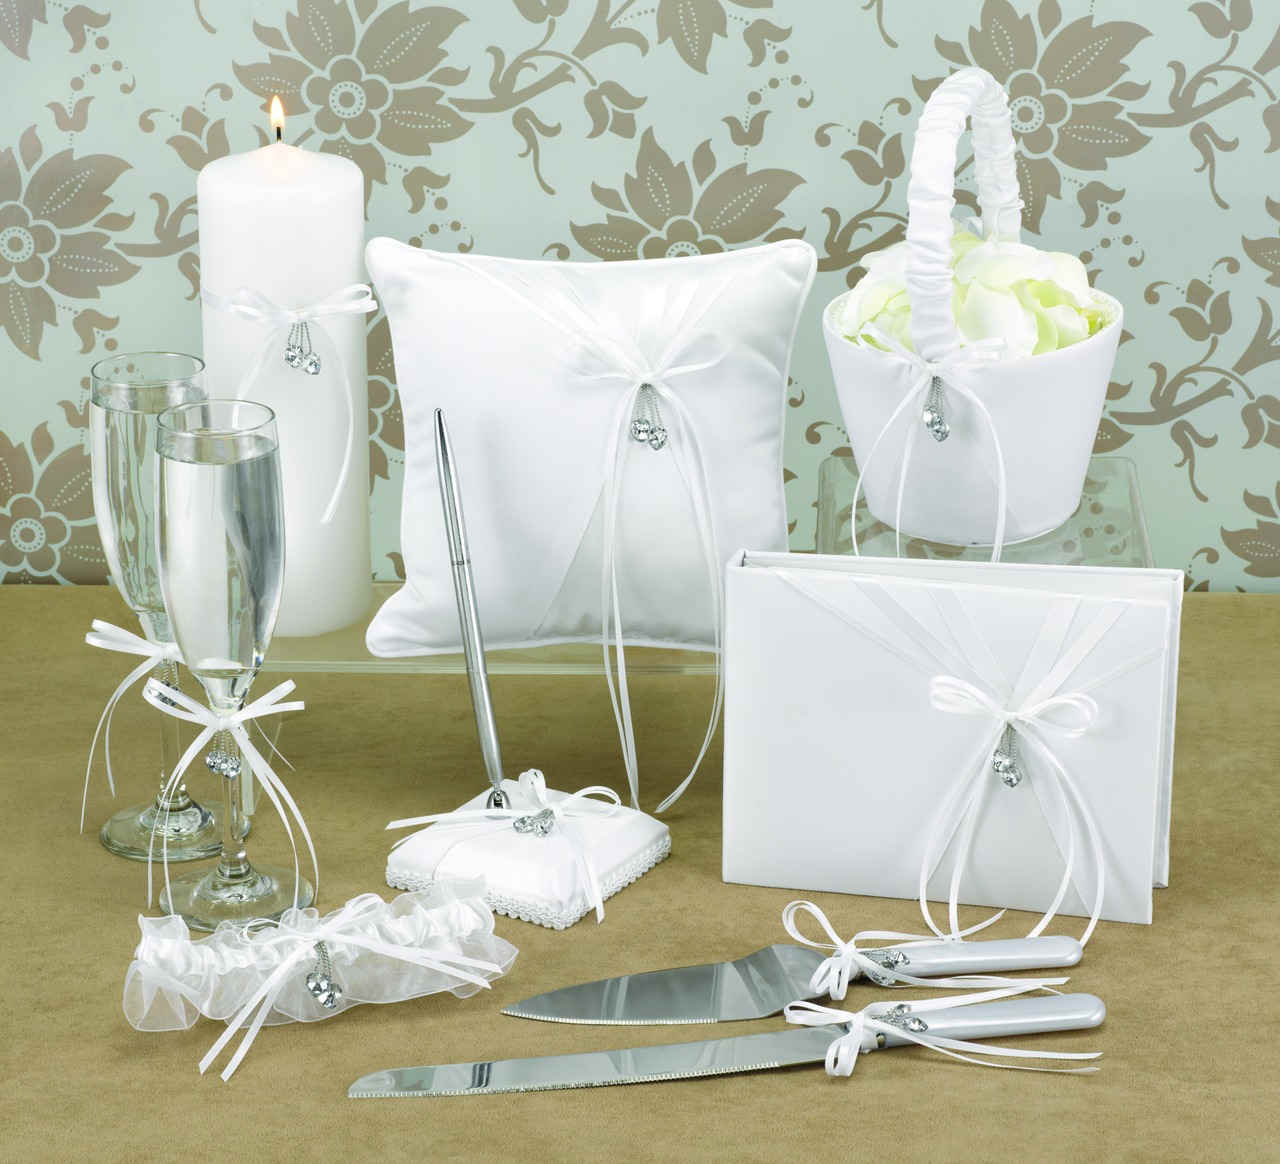 Wedding supplies romantic decoration for Decoration stuff